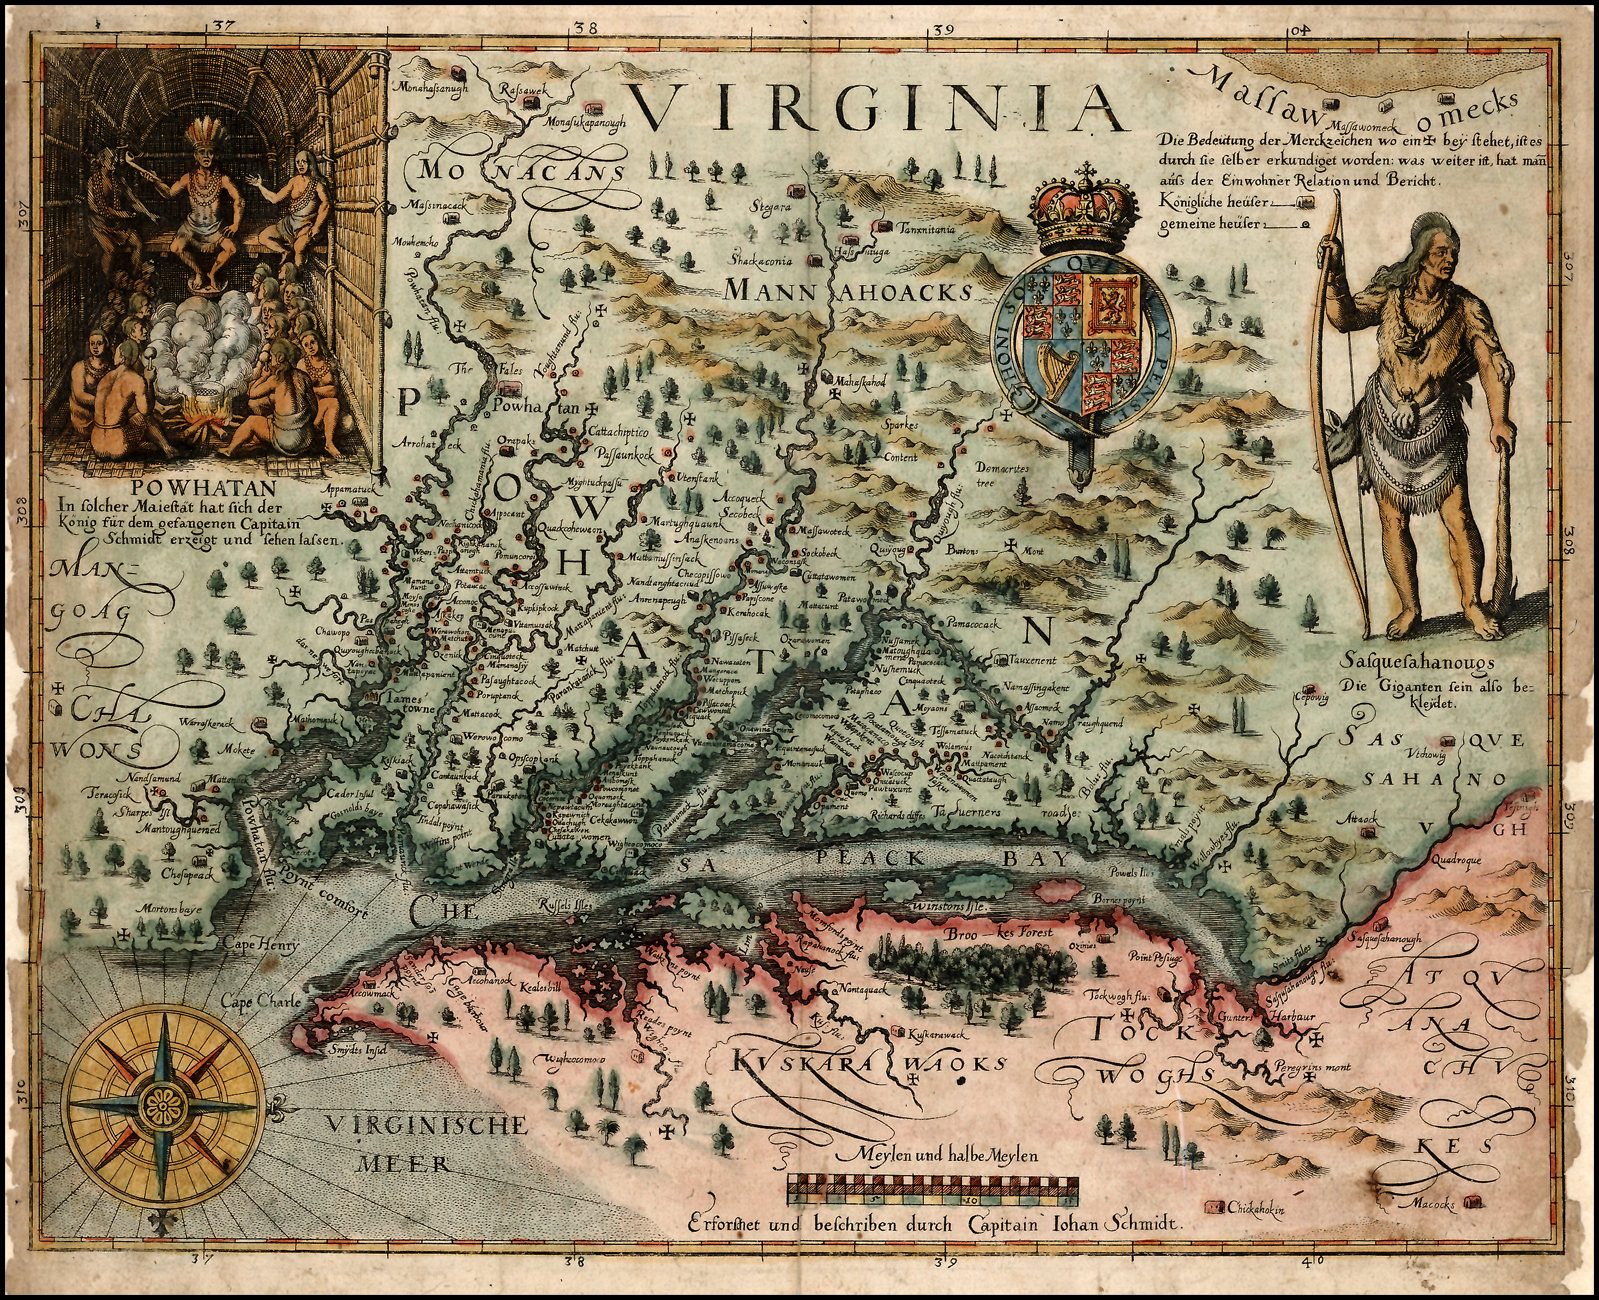 A colored version of John Smith's map of the Chesapeake Bay region, compiled in 1608 and published in 1624